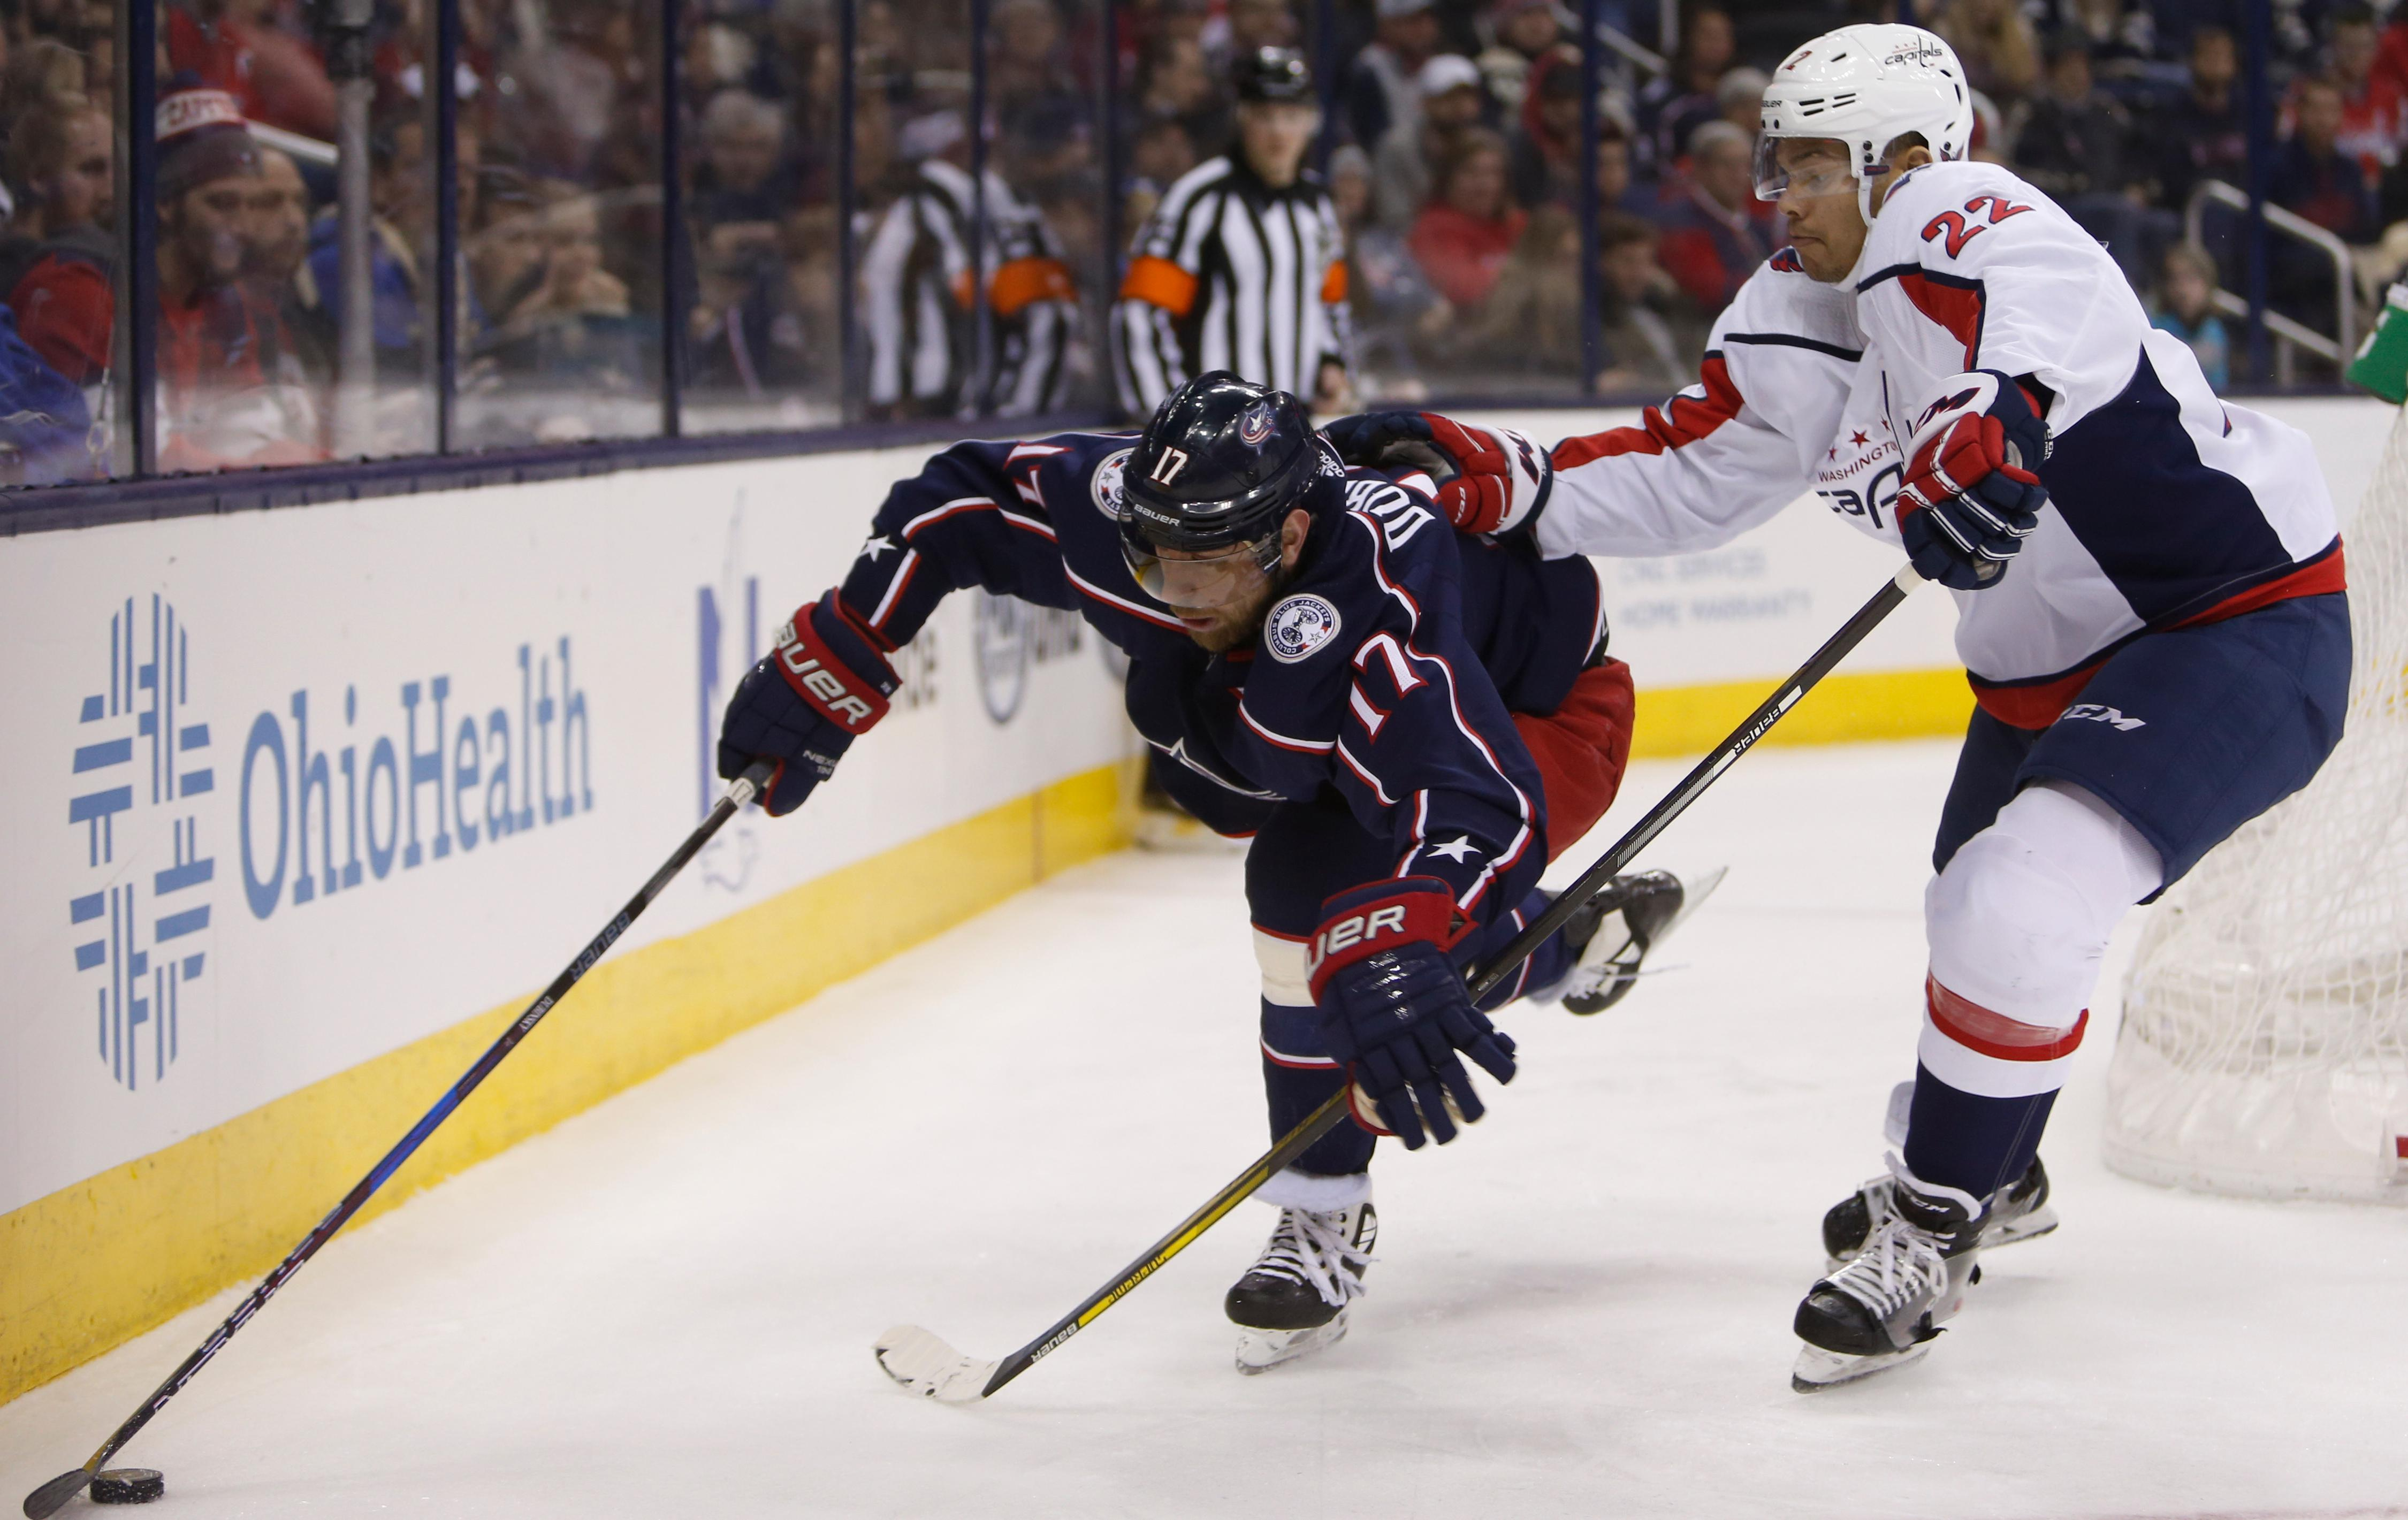 Columbus Blue Jackets' Brandon Dubinsky, left, tries to control the puck as Washington Capitals' Madison Bowey defends during the second period of an NHL hockey game Tuesday, Feb. 6, 2018, in Columbus, Ohio. (AP Photo/Jay LaPrete)